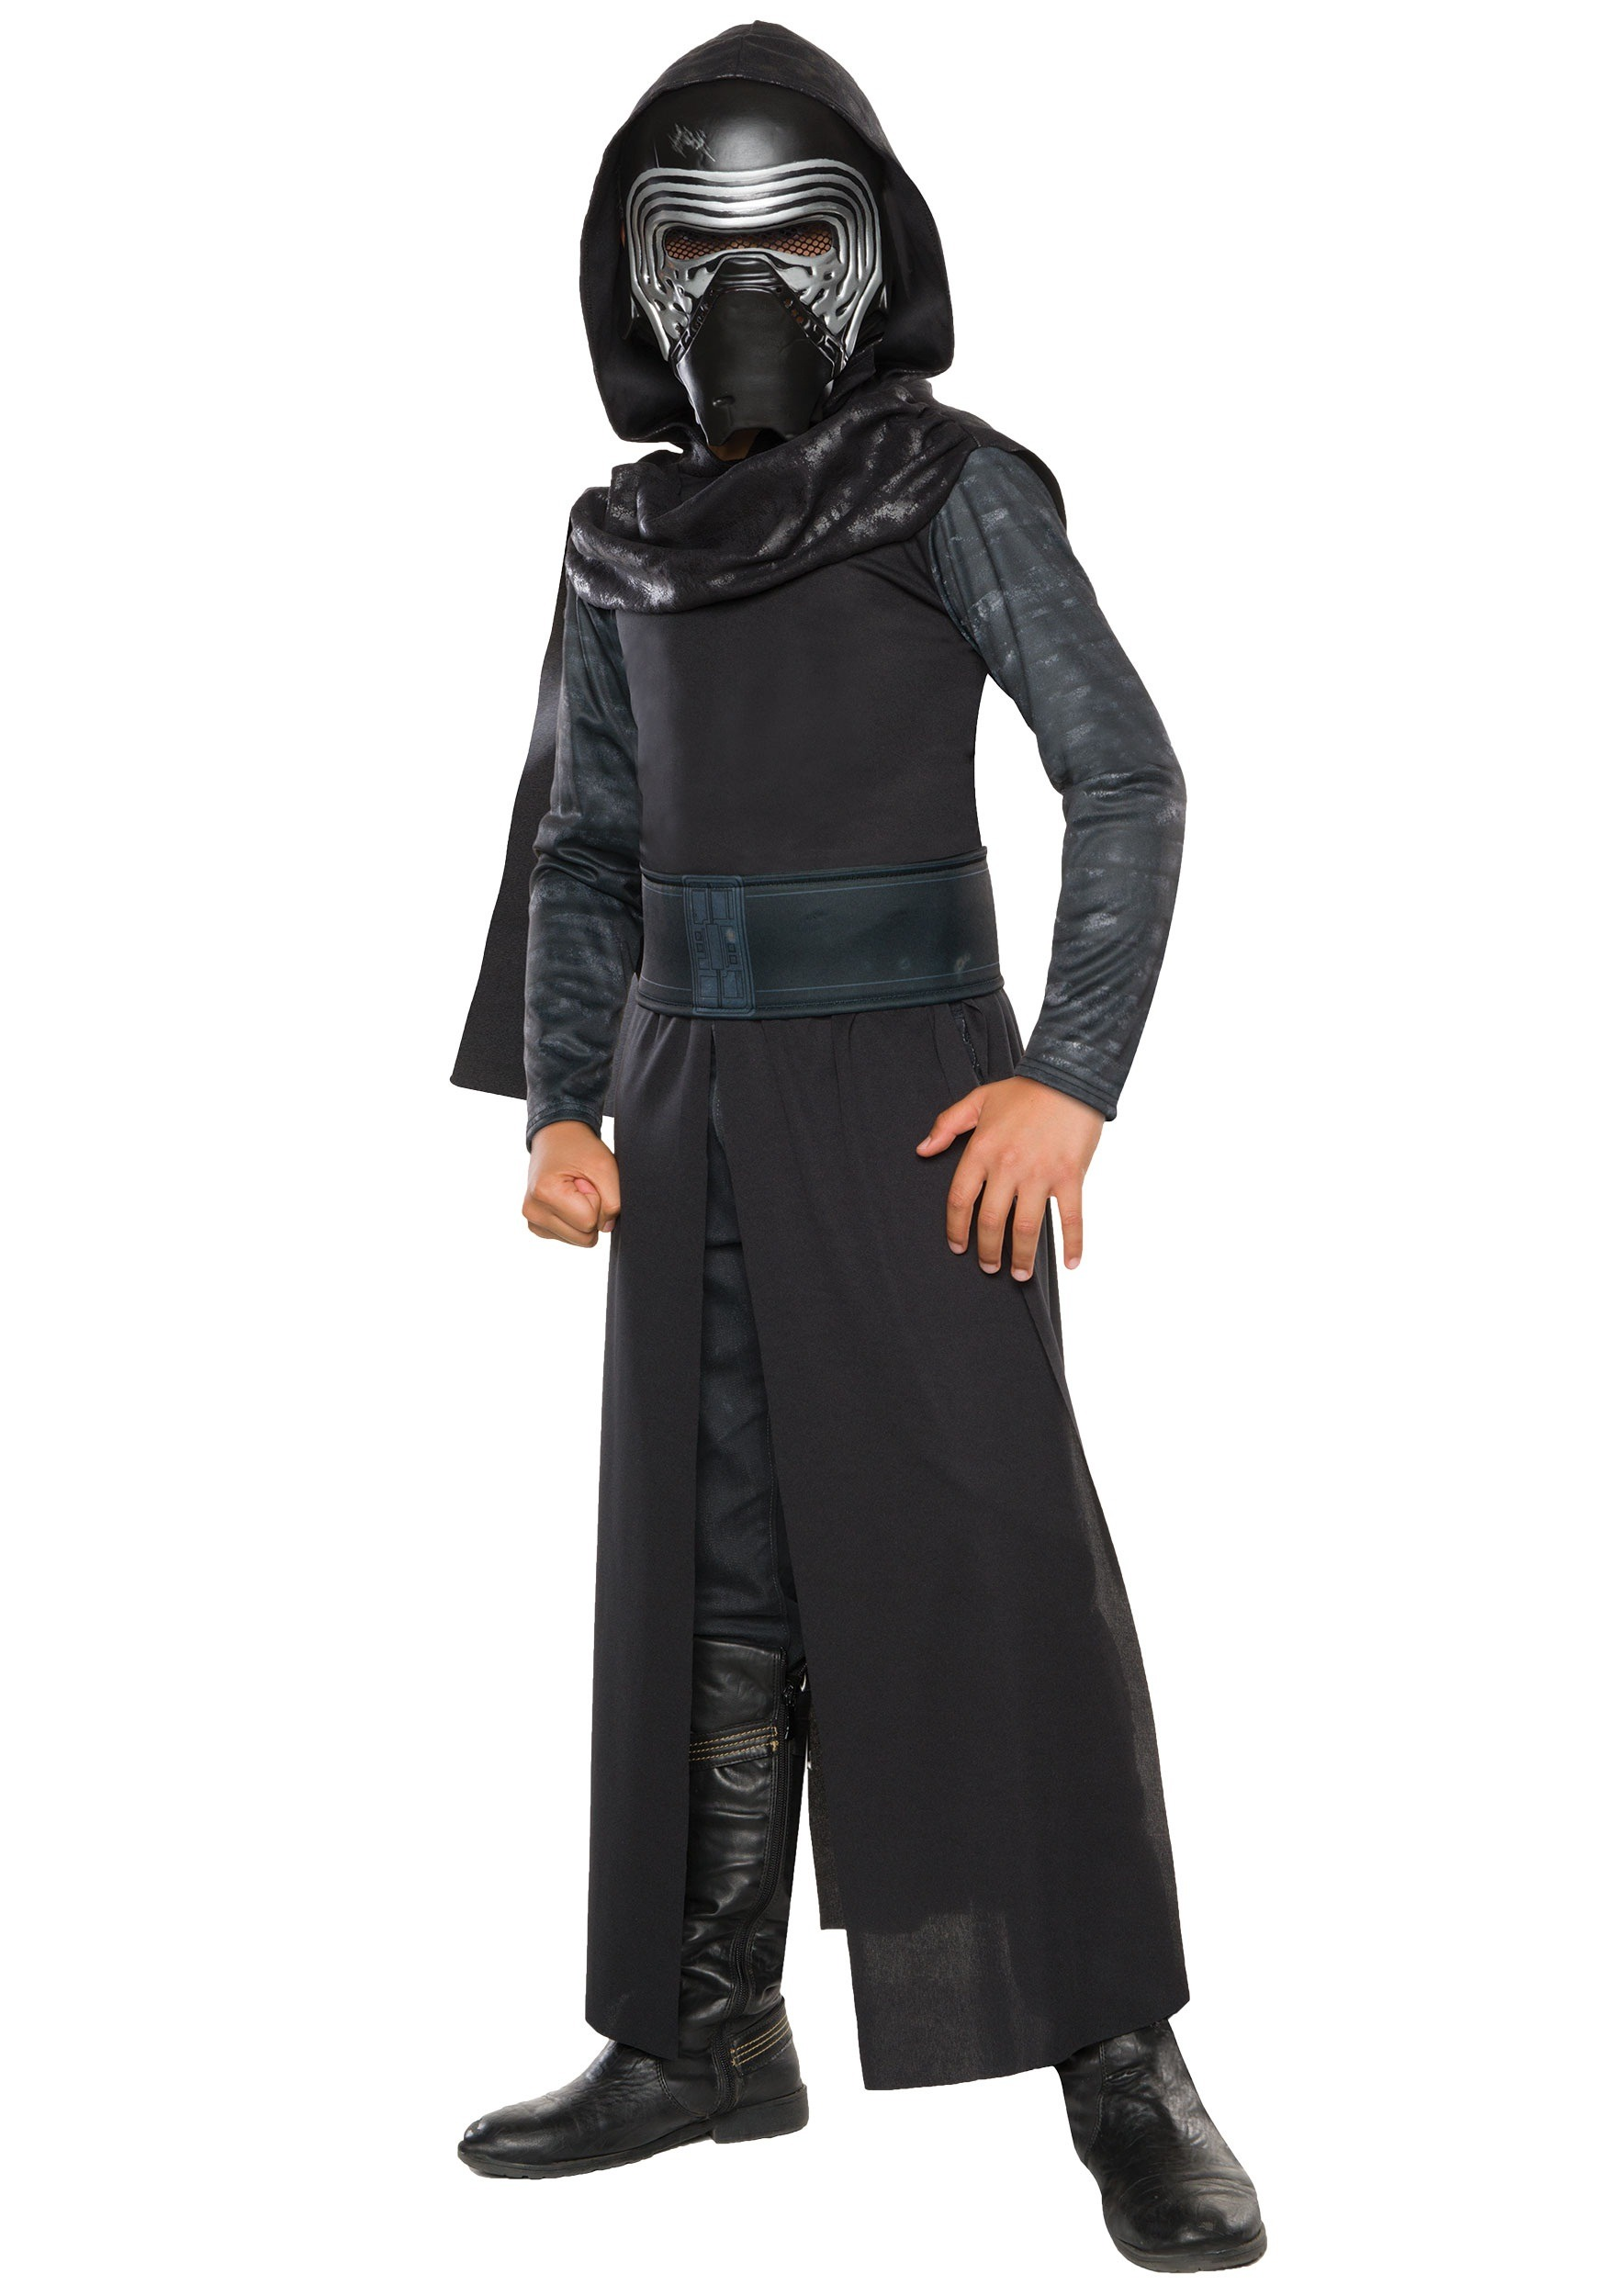 Child classic star wars the force awakens kylo ren costume